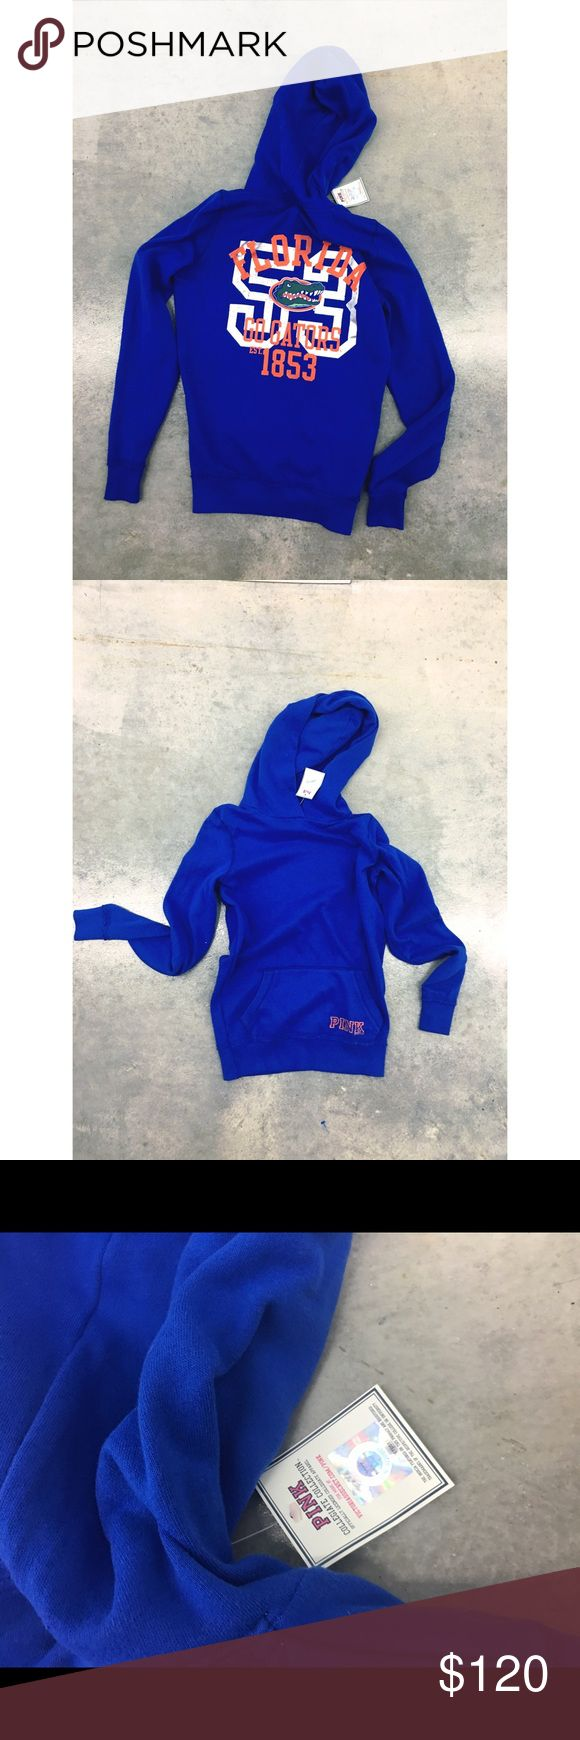 Victoria's Secret 🐊 VS collegiate FLORIDA GATORS ✨(❁´◡`❁) ωḙℓḉ✺Պḙ (❁´◡`❁)✨    🦋Description:   •Represent for Florida Gators!!  •Long sleeve / Hoodie / Kangaroo pocket on front  •Pull over style    PERFECT for summer festivals  • Coachella • Burning man • Hippie • Bohemian • Boho babe • Summer •    ✨     🦋 Brand: Victoria's Secret PINK - Collegiate collection   ✨   🦋Size: Small   ✨   🦋Condition: NWT     ✨  (please refer to all photos Don't hesitate to ask ANY and ALL question before…